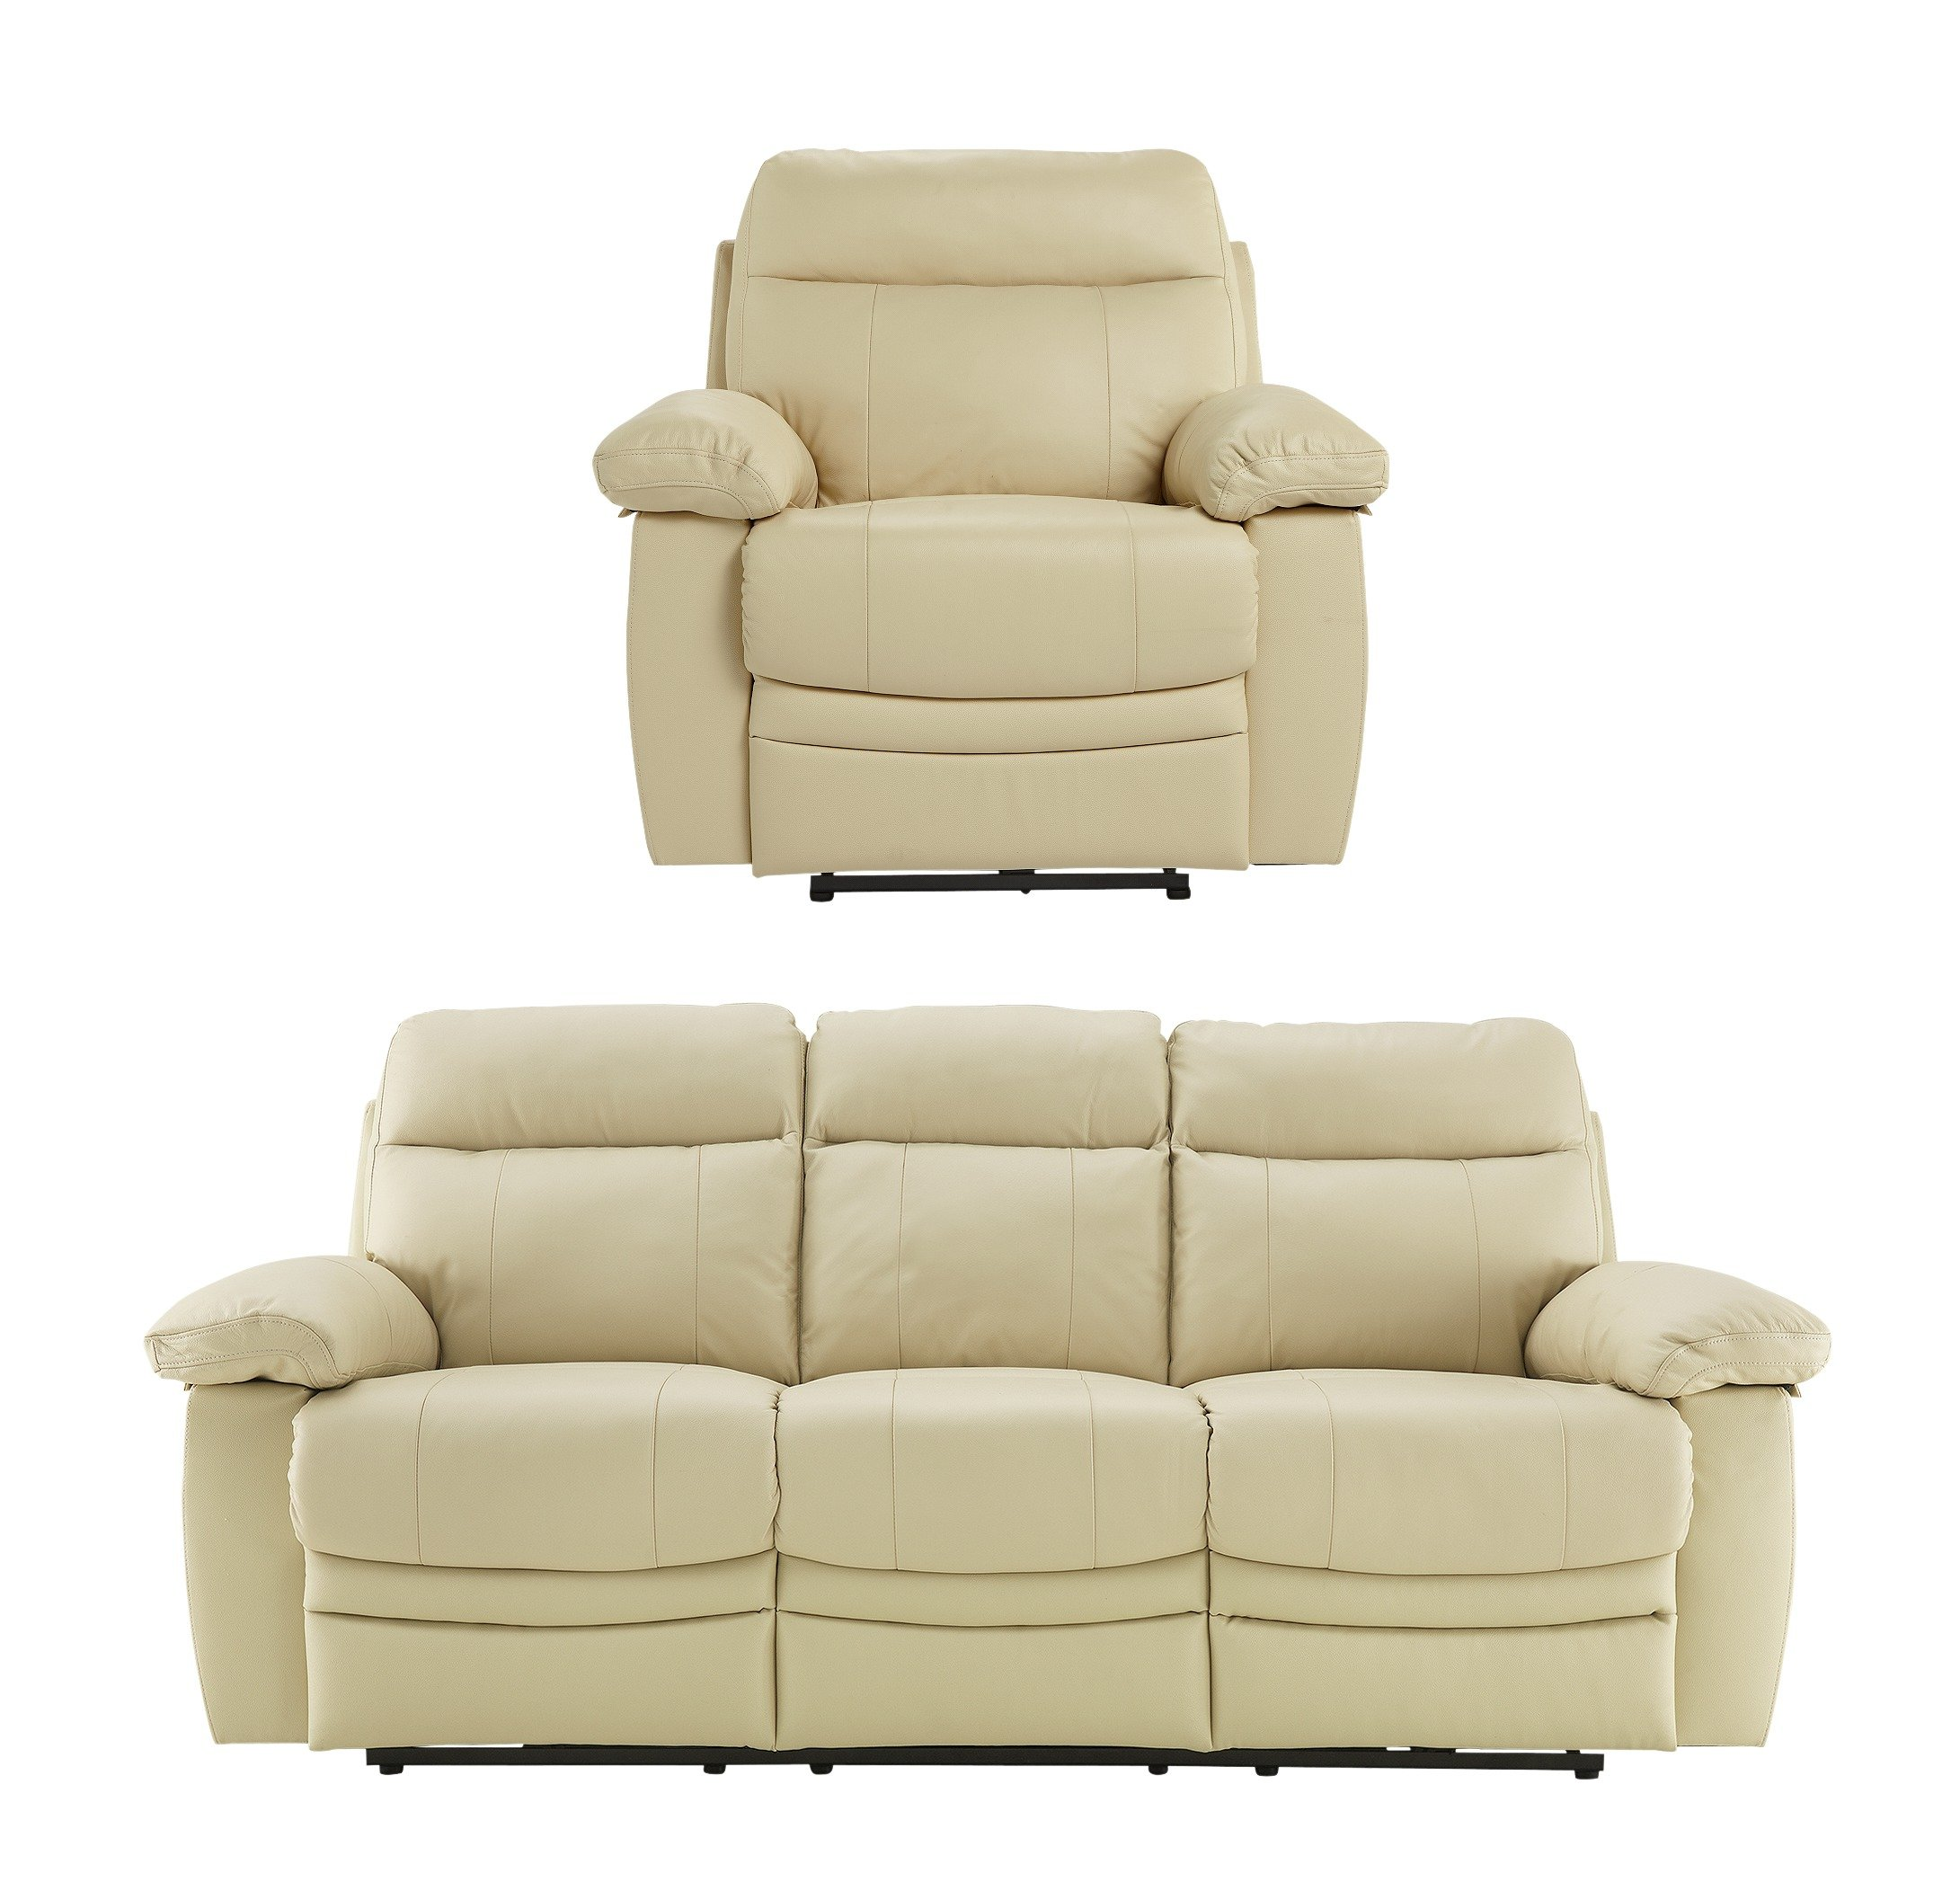 Argos Home - New Paolo Large Power Recliner - Sofa/Chair - Ivory